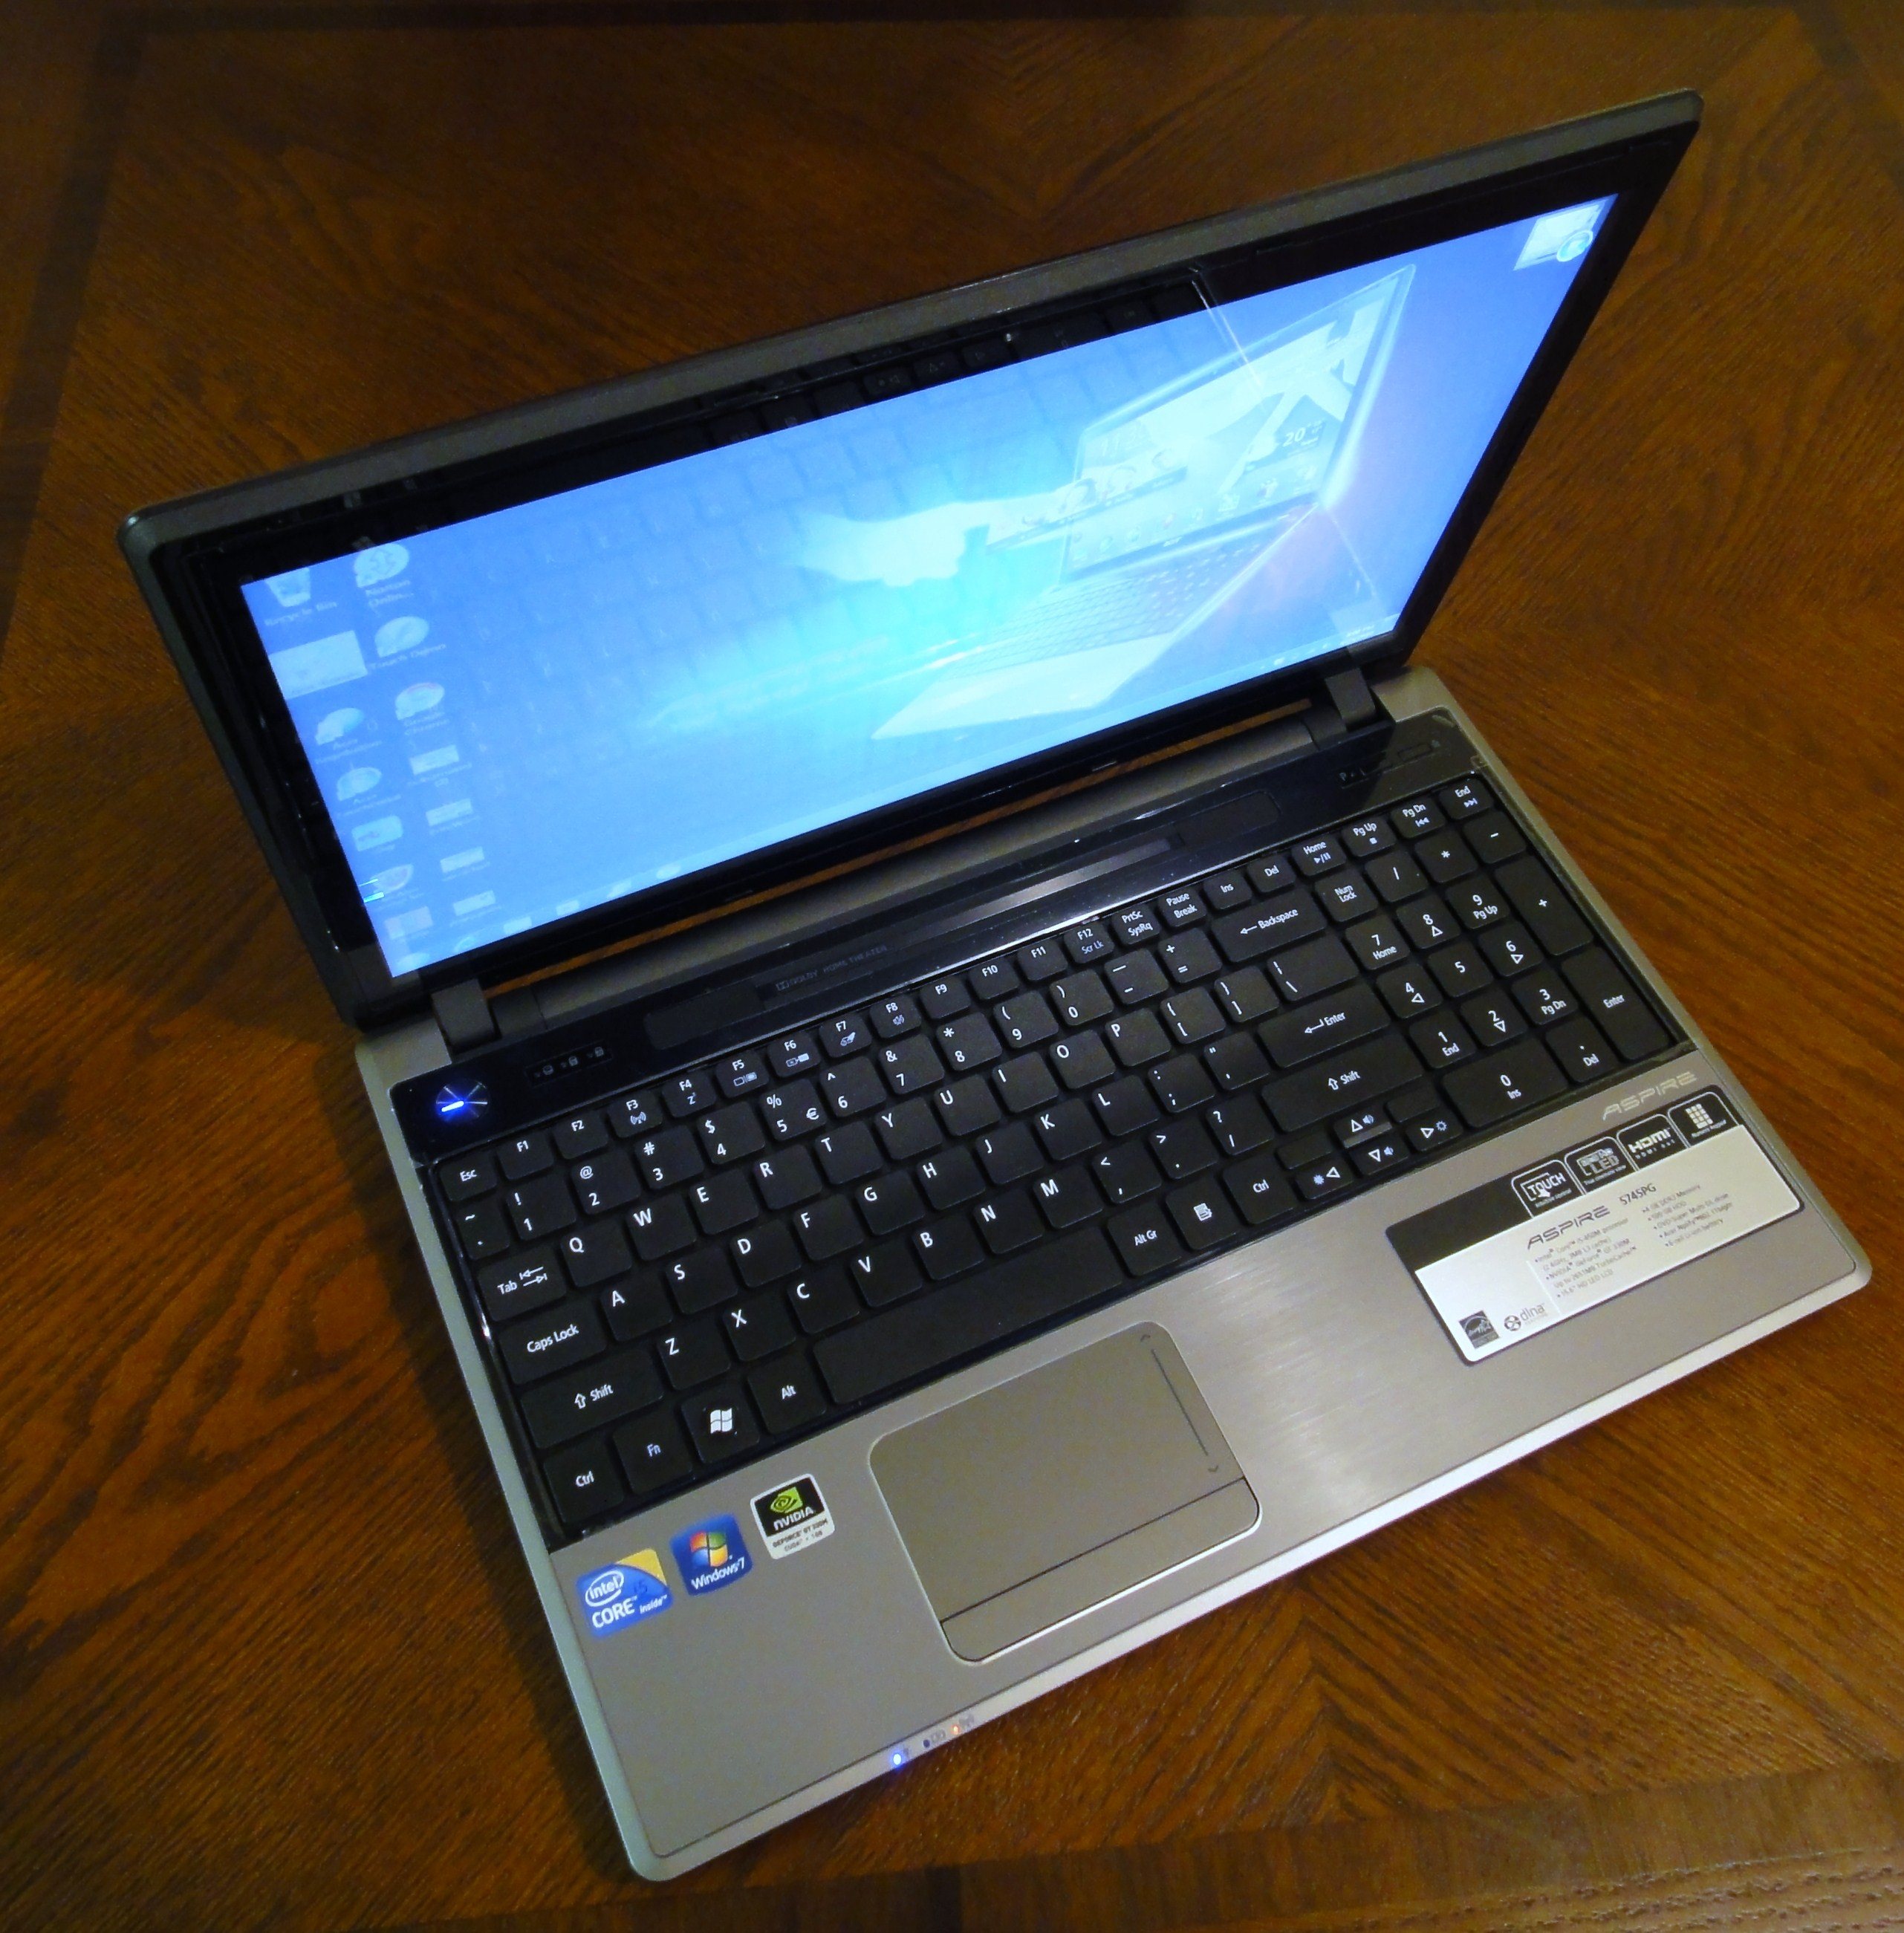 ACER ASPIRE 5745PG DRIVER FOR WINDOWS